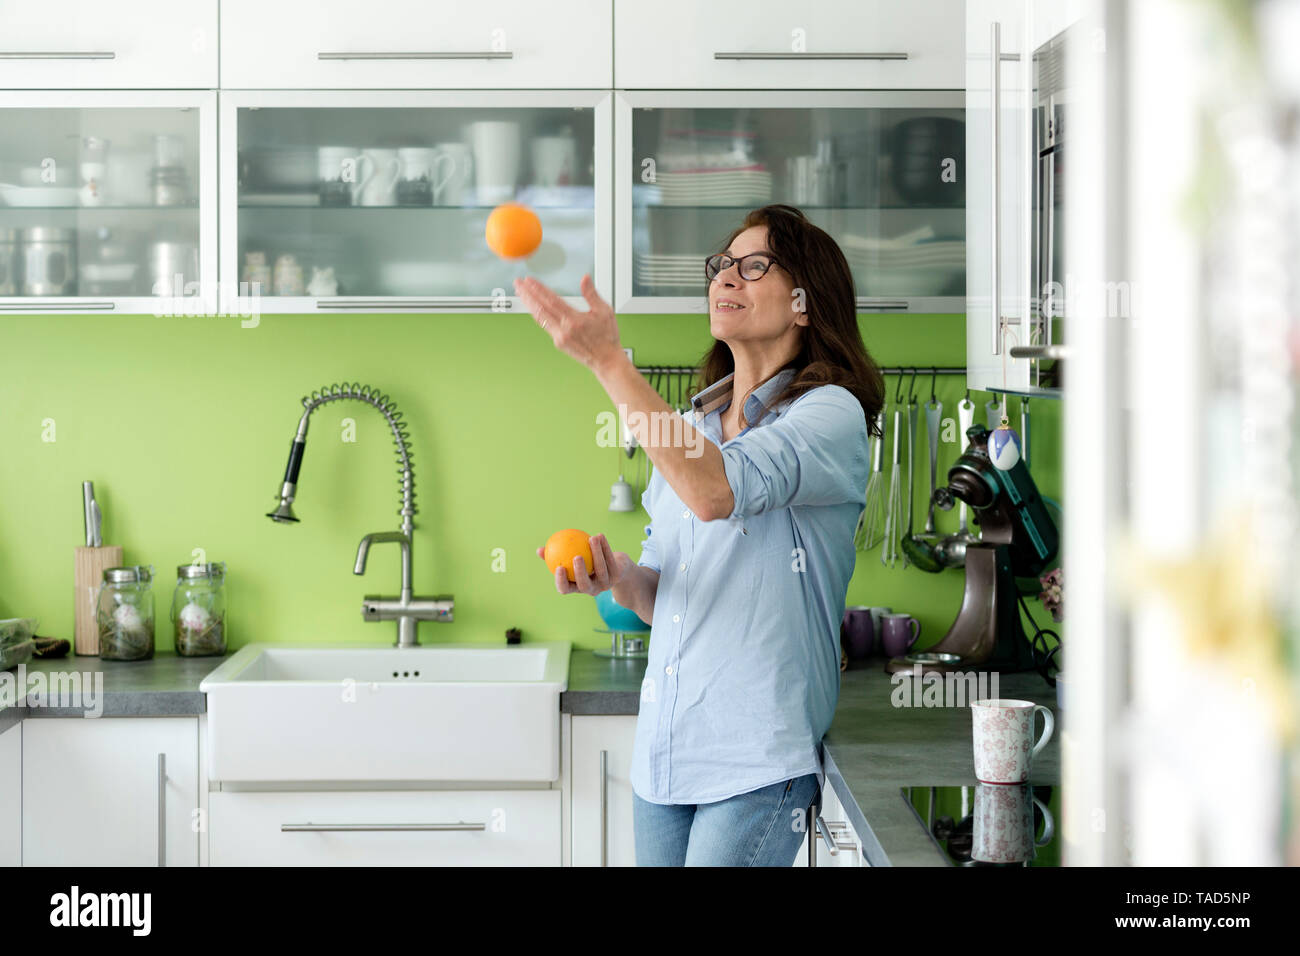 Mature woman juggling with oranges in kitchen at home - Stock Image